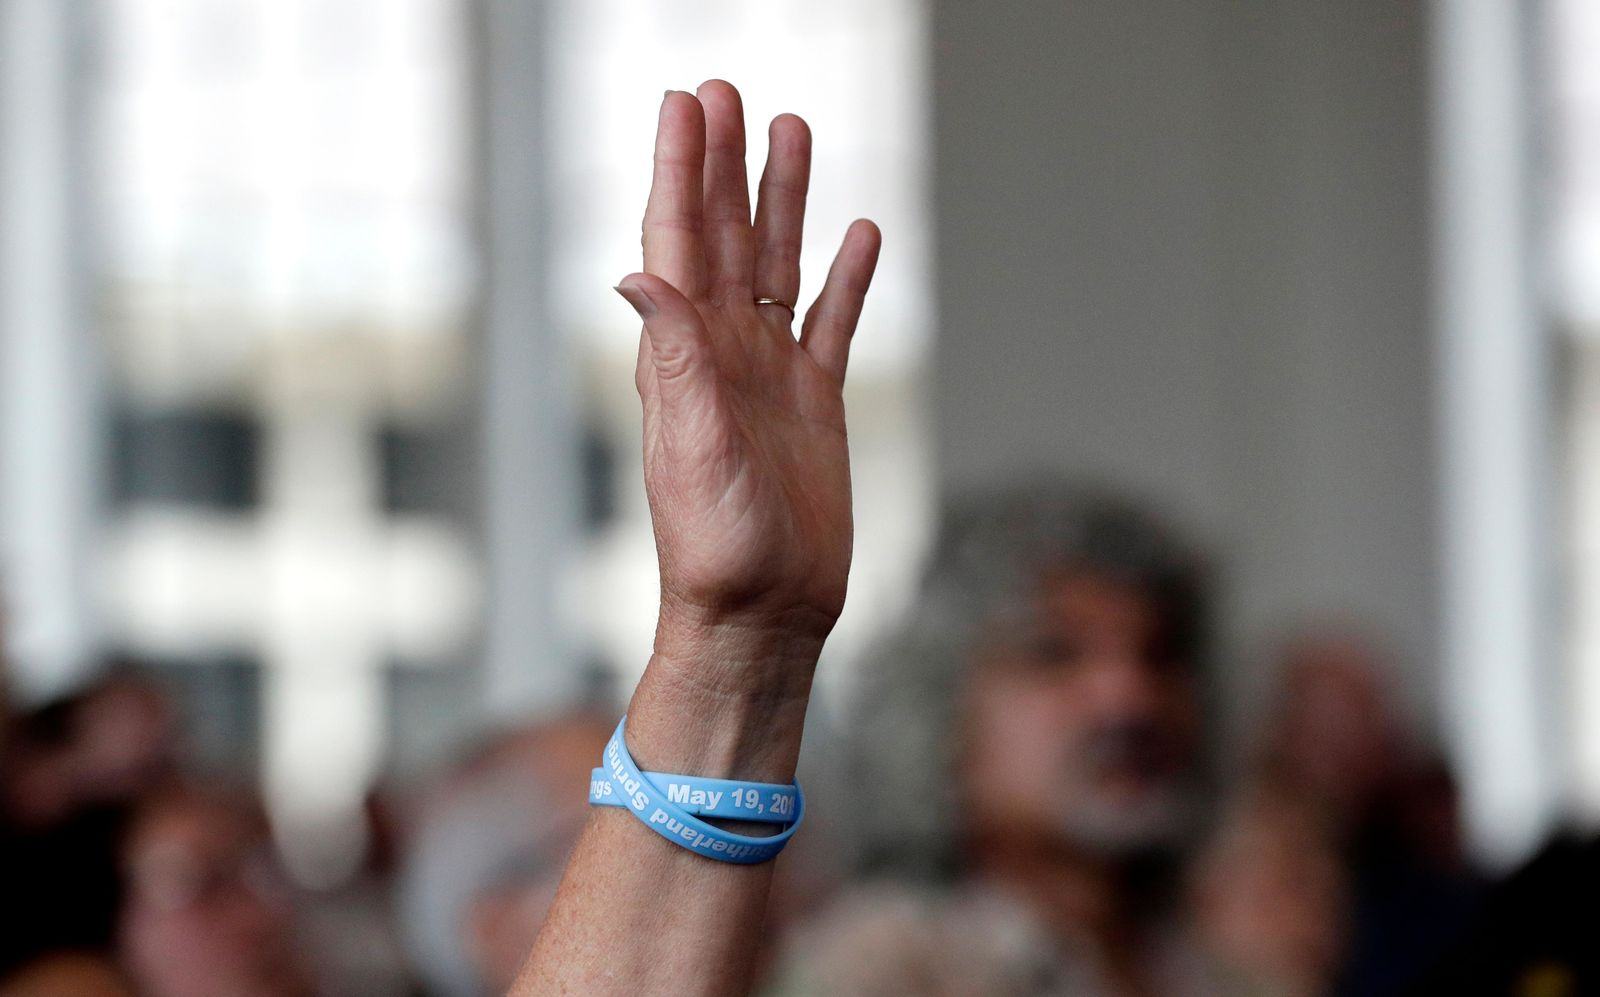 A woman holds her hands in the air a music plays during a dedication ceremony for a new sanctuary and memorial room at the First Baptist Church in Sutherland Springs, Texas, Sunday, May 19, 2019. In 2017 a gunman opened fire at the church and killed more than two dozen congregants. (AP Photo/Eric Gay)